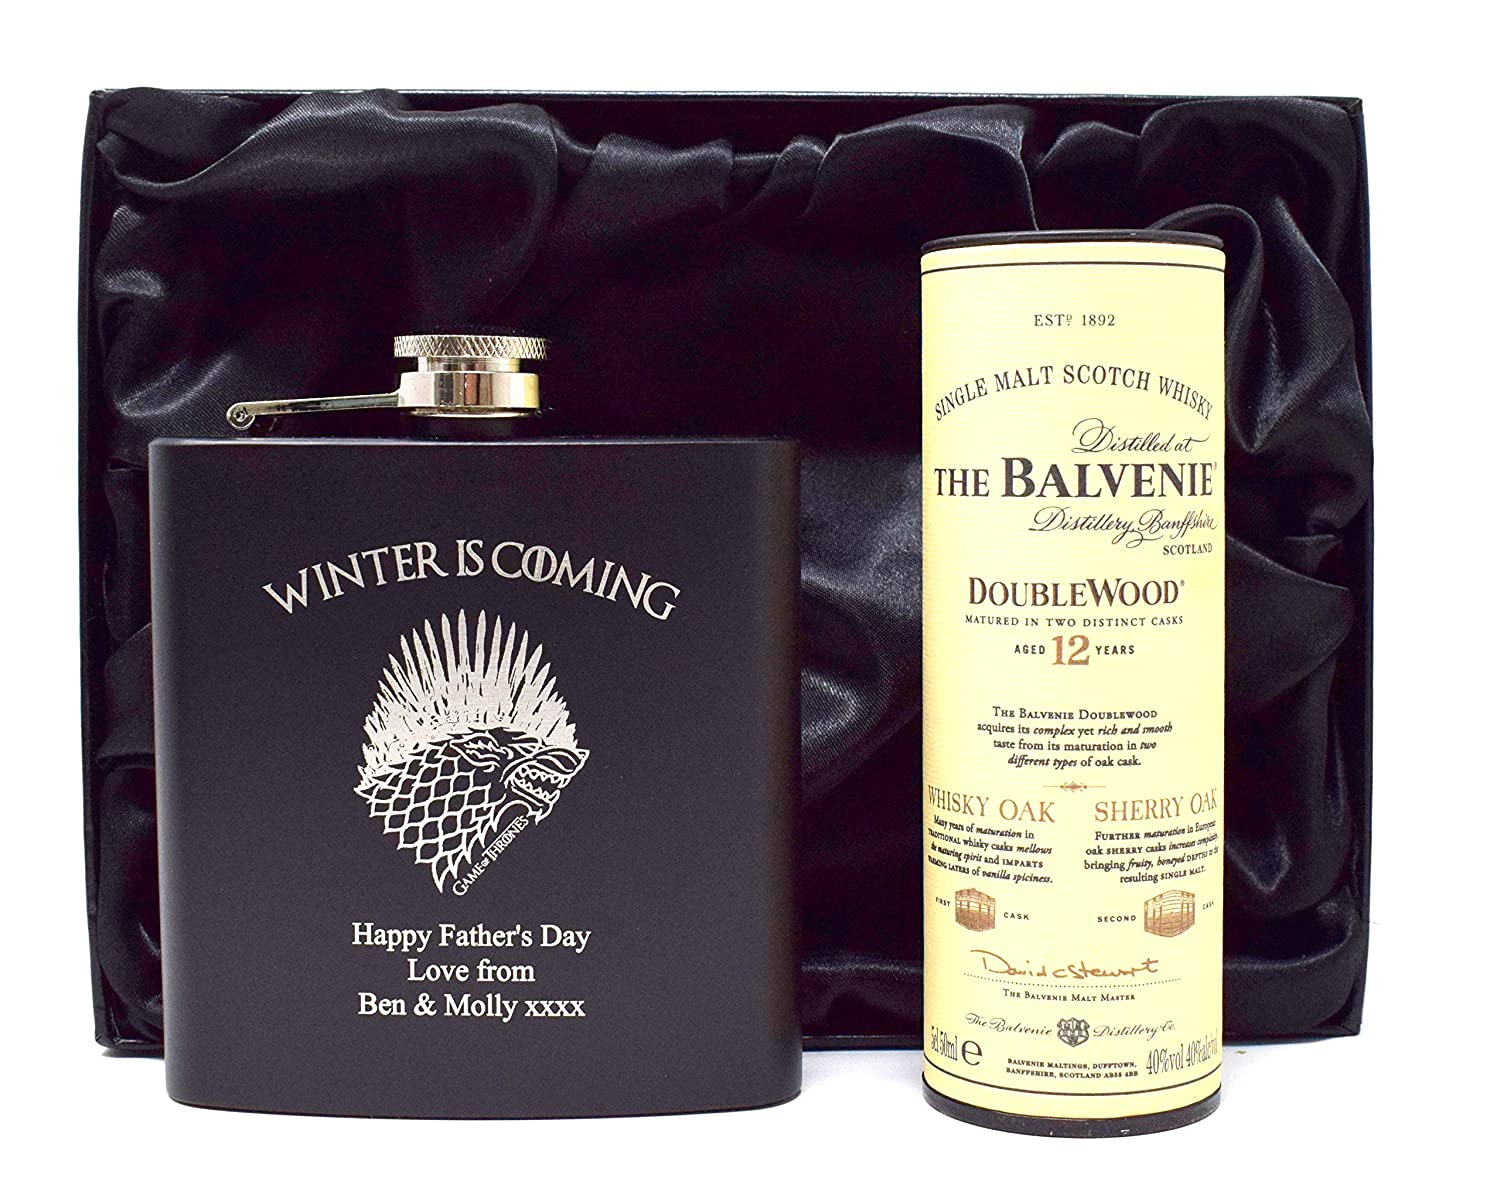 Jack Daniels Engraved//Personalised *Game of Thrones Winter is Coming Design* Black Hip Flask /& Miniature Bottle of Alcohol in Silk Gift Box